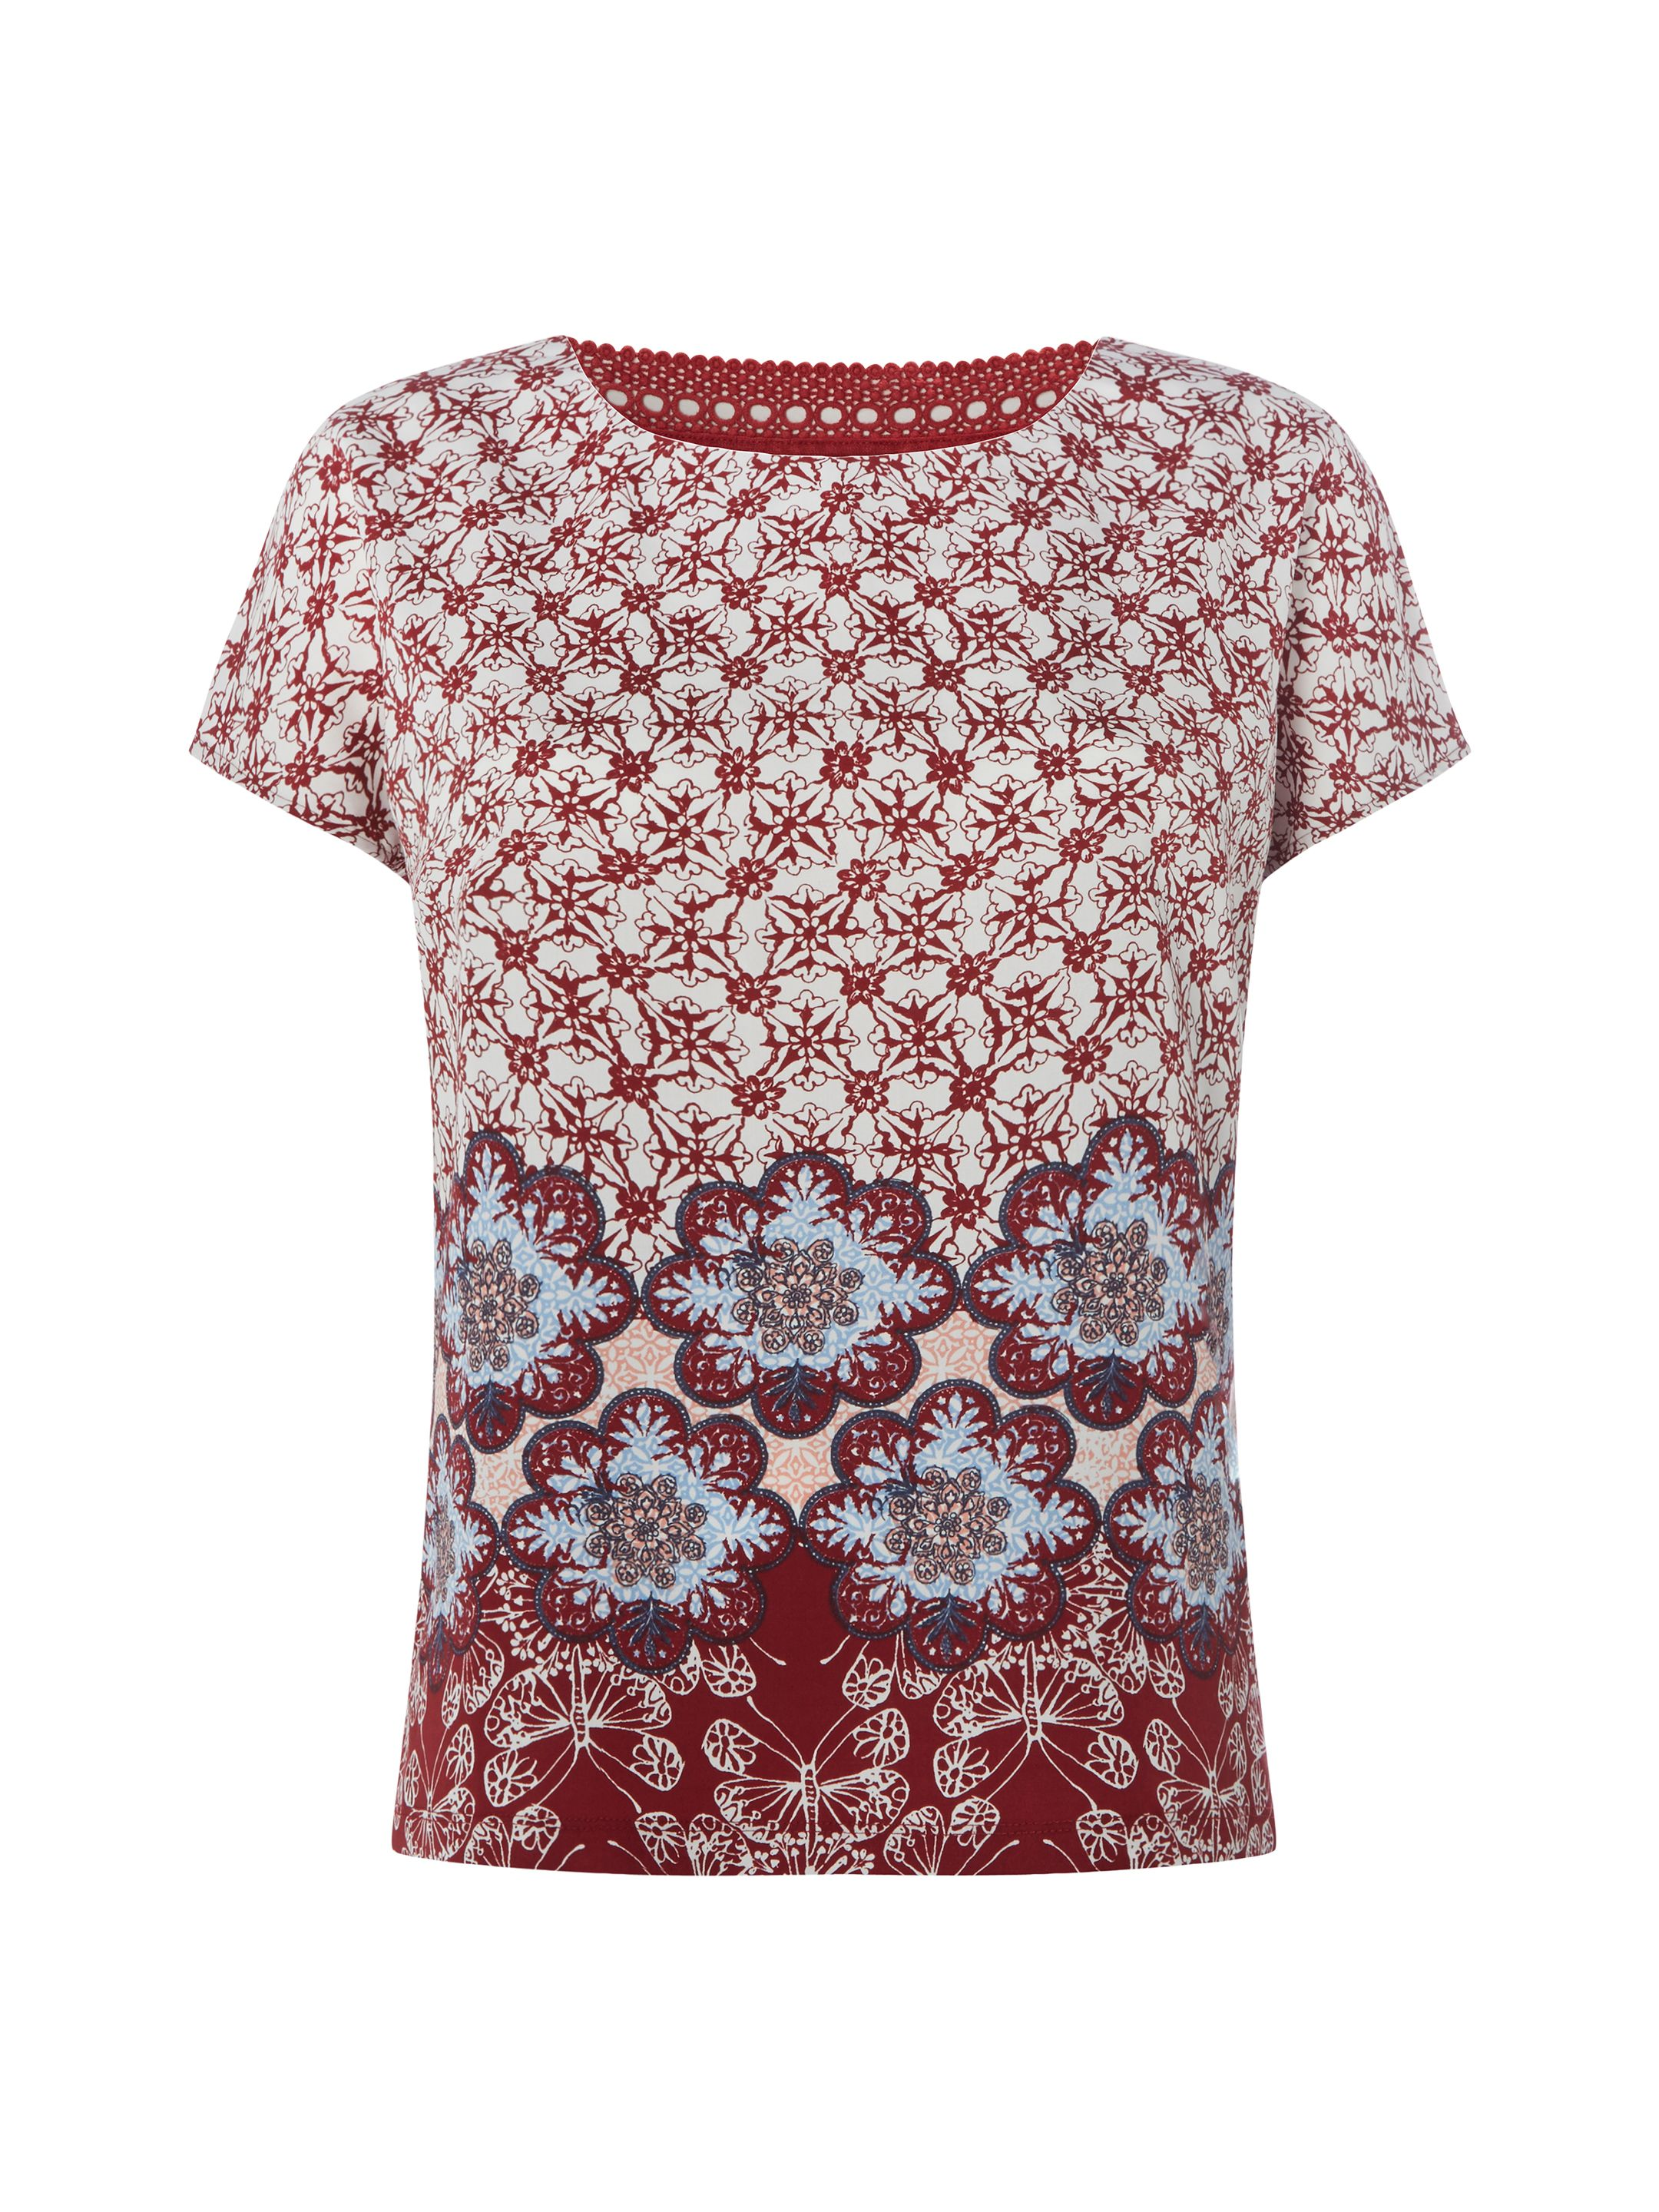 White Stuff Hennie Floral Jersey Tee, Red